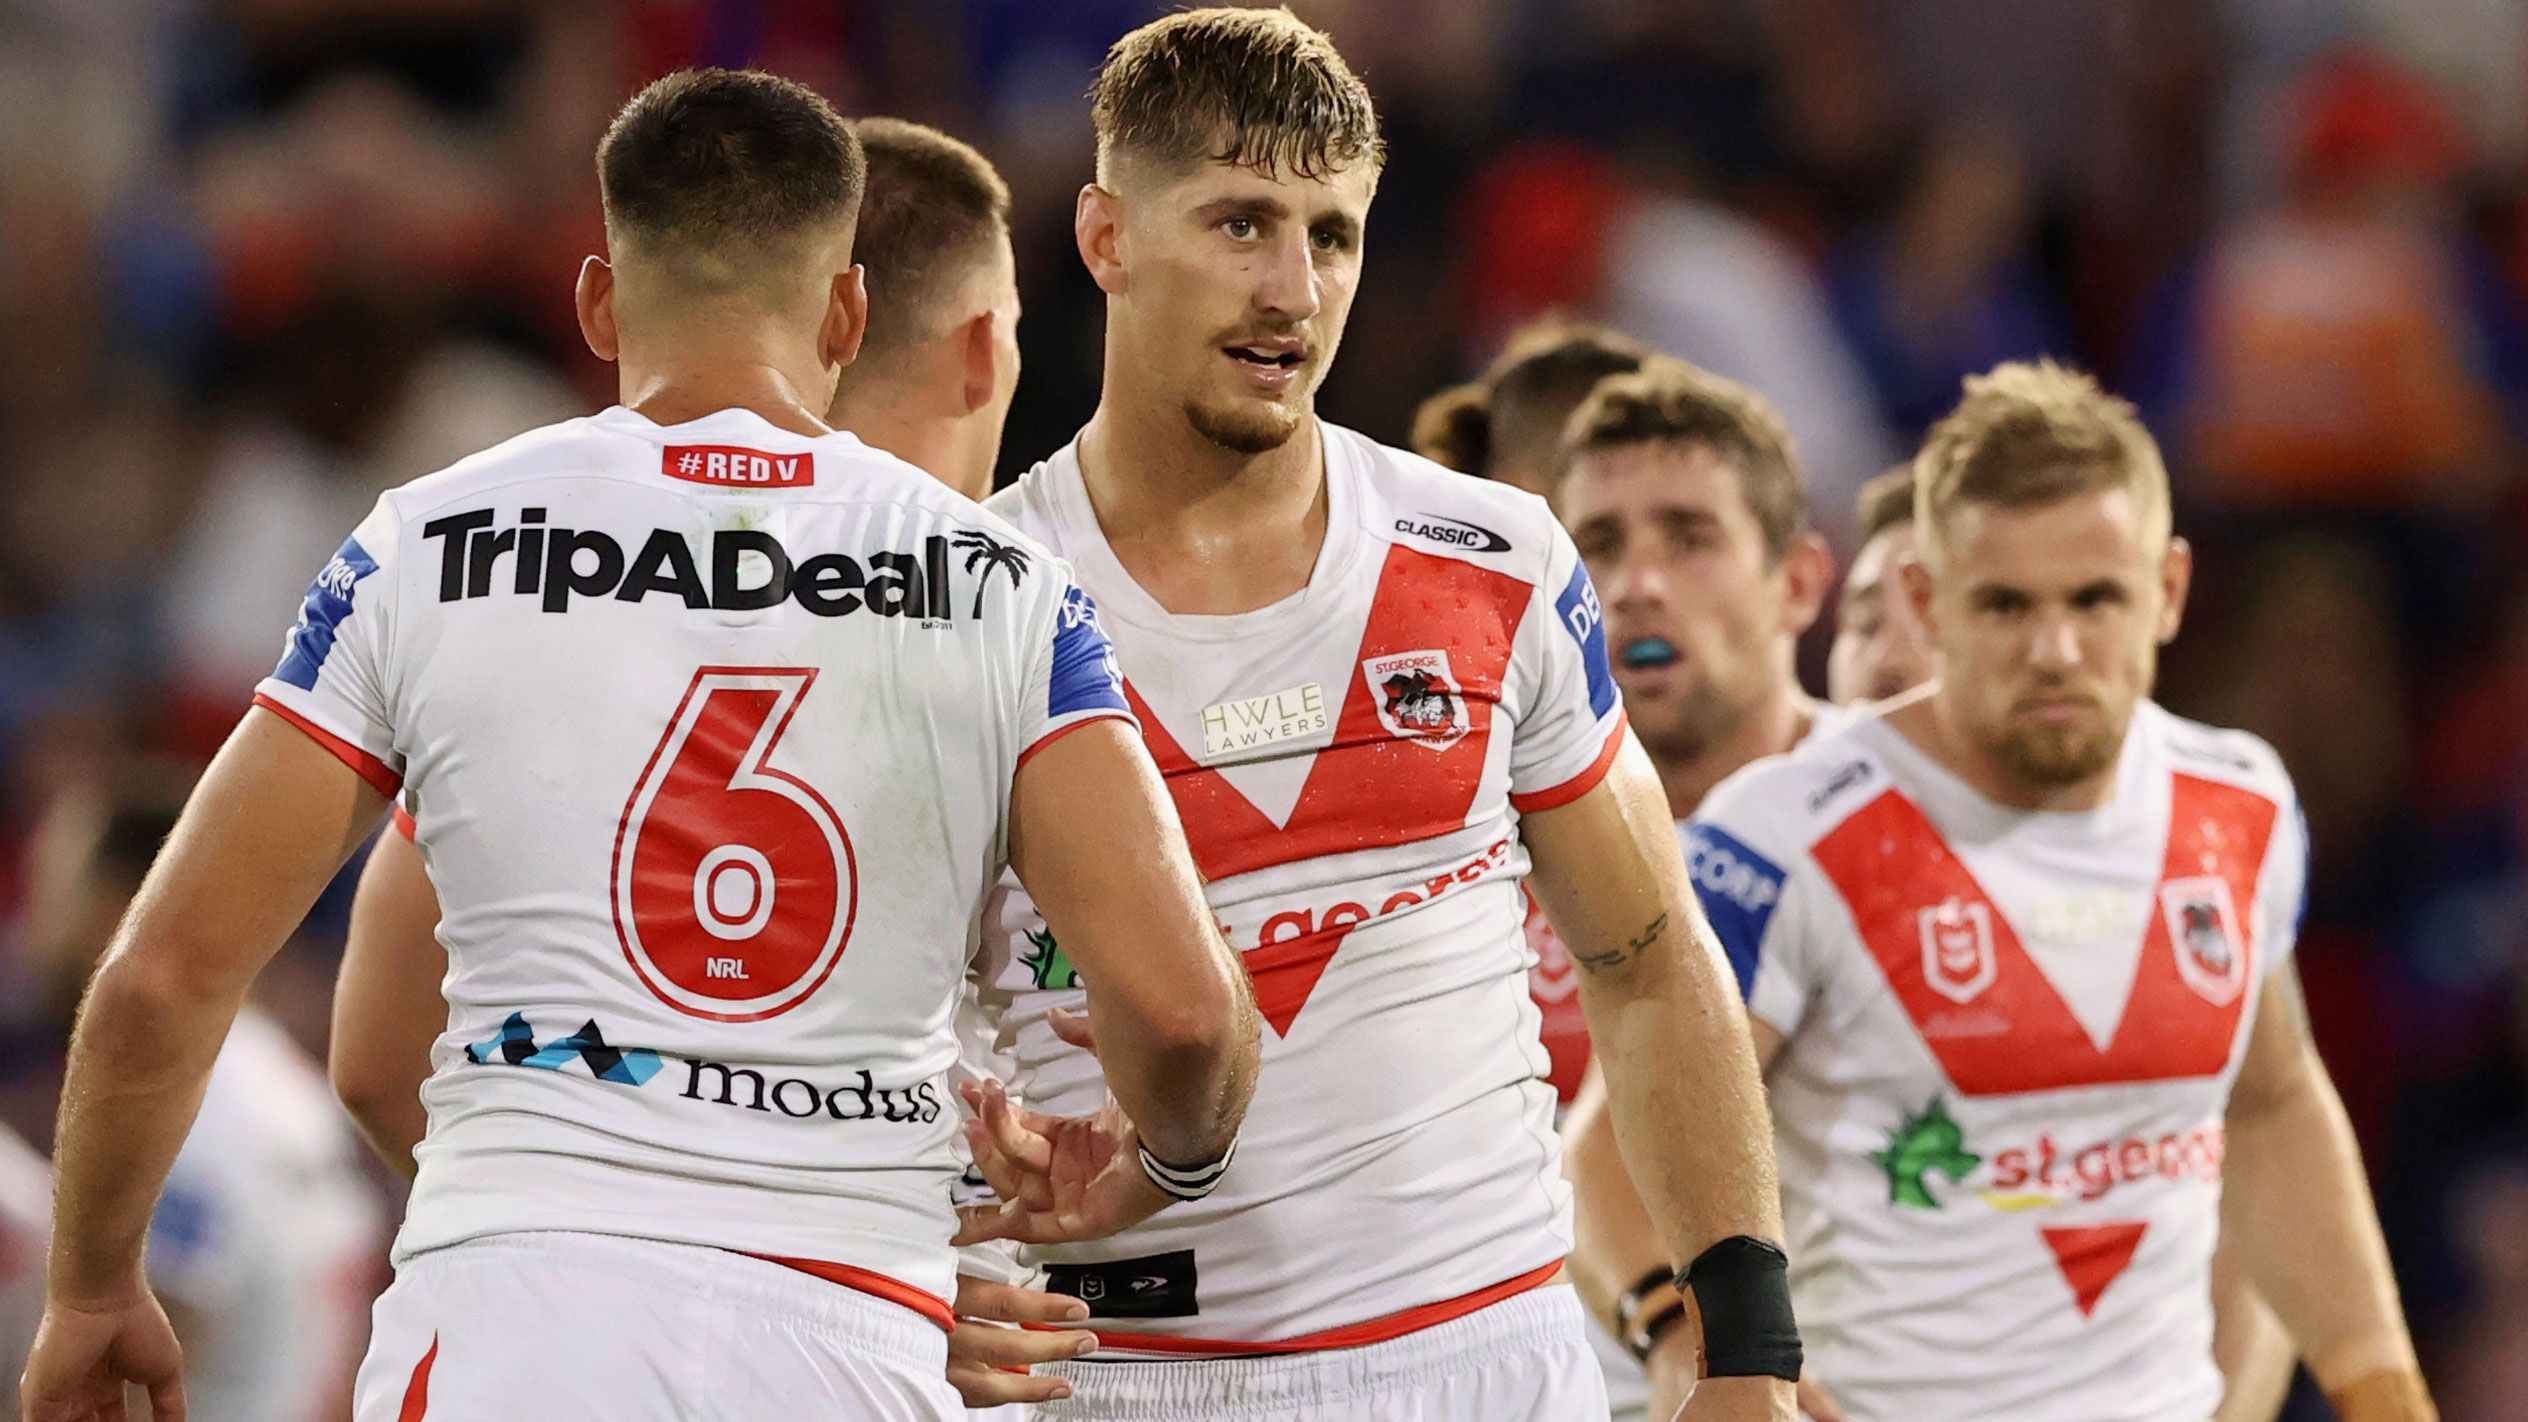 NRL Round 5 tips: Andrew Johns, Brad Fittler and Nine's experts give their predictions